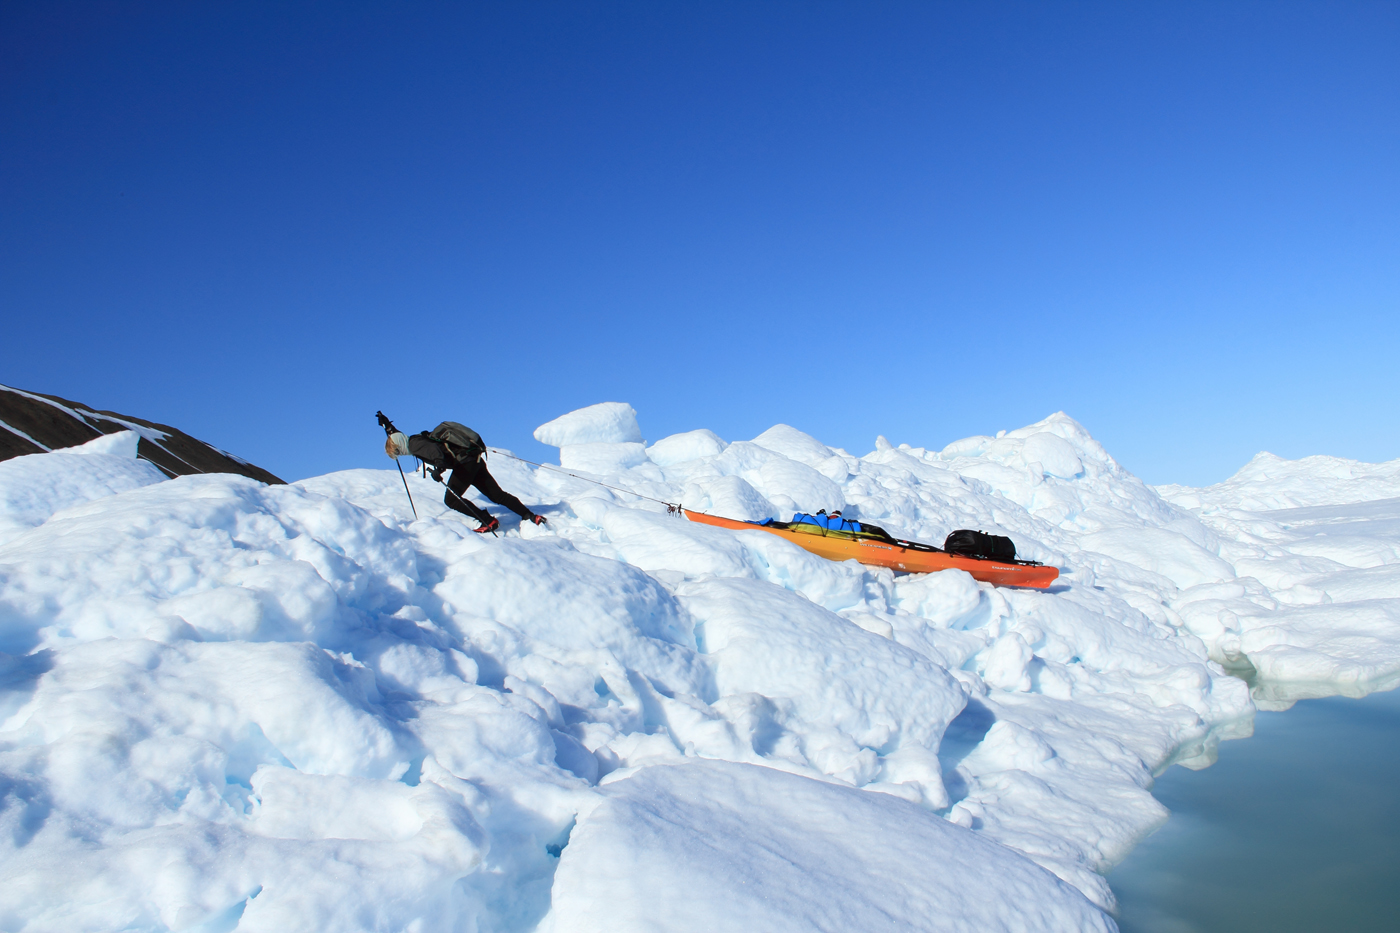 Erik Boomer pulling over a pressure ridge after we abandoned our skis.